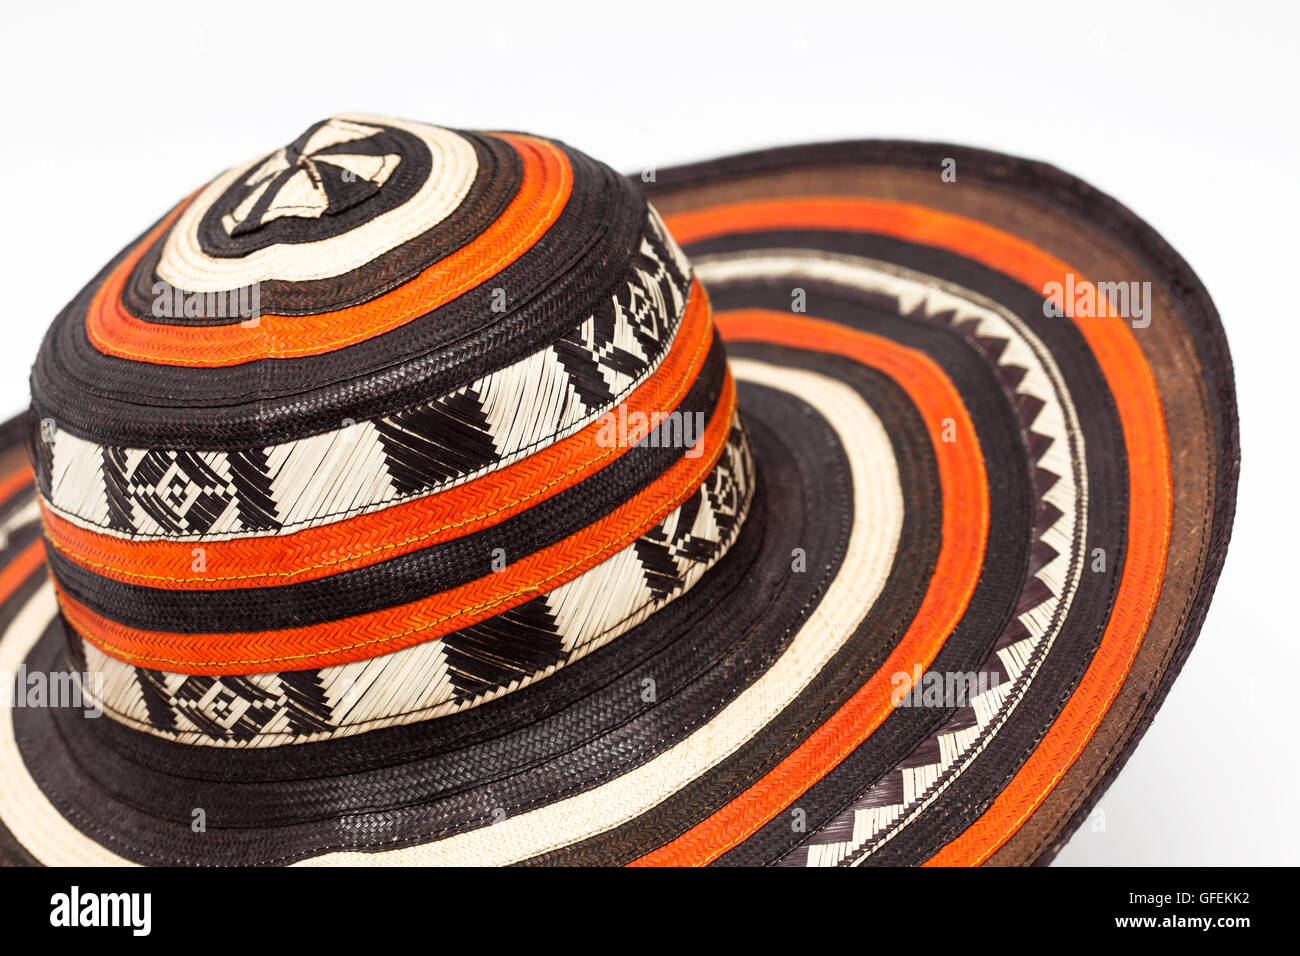 f657c5df974 Traditional hat from Colombia